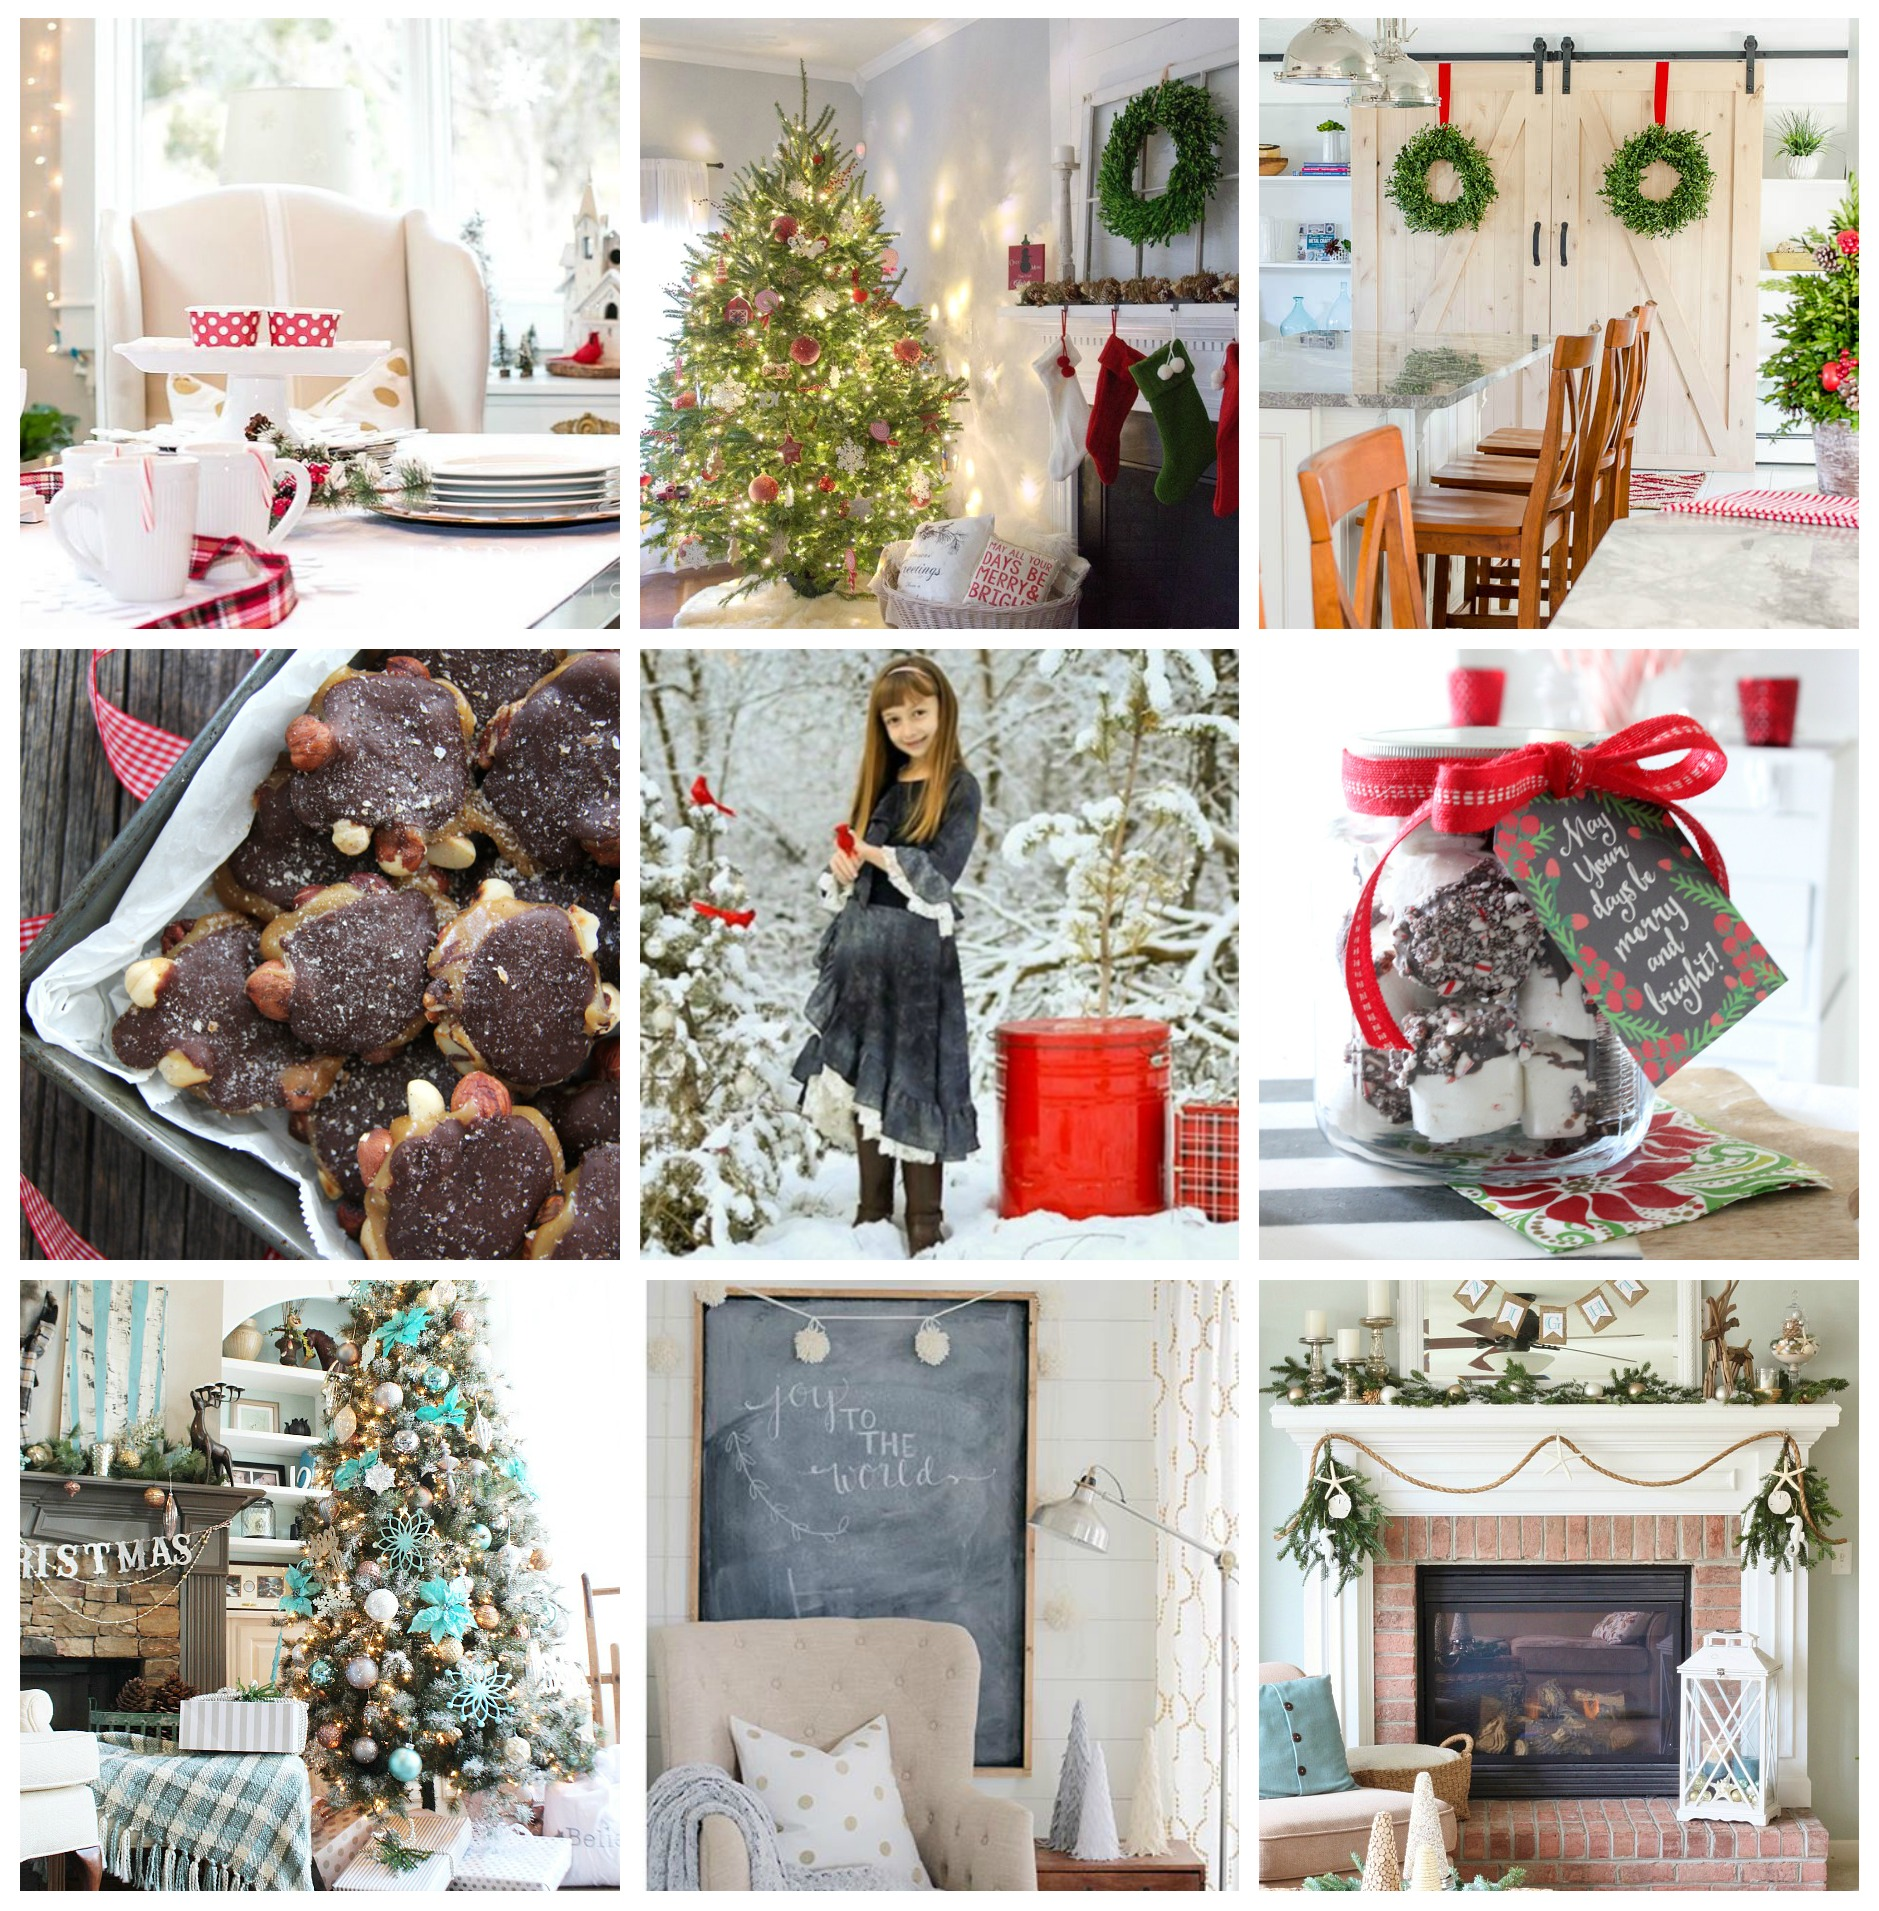 Favorite Christmas Ideas From #foxhollowfridayfavs